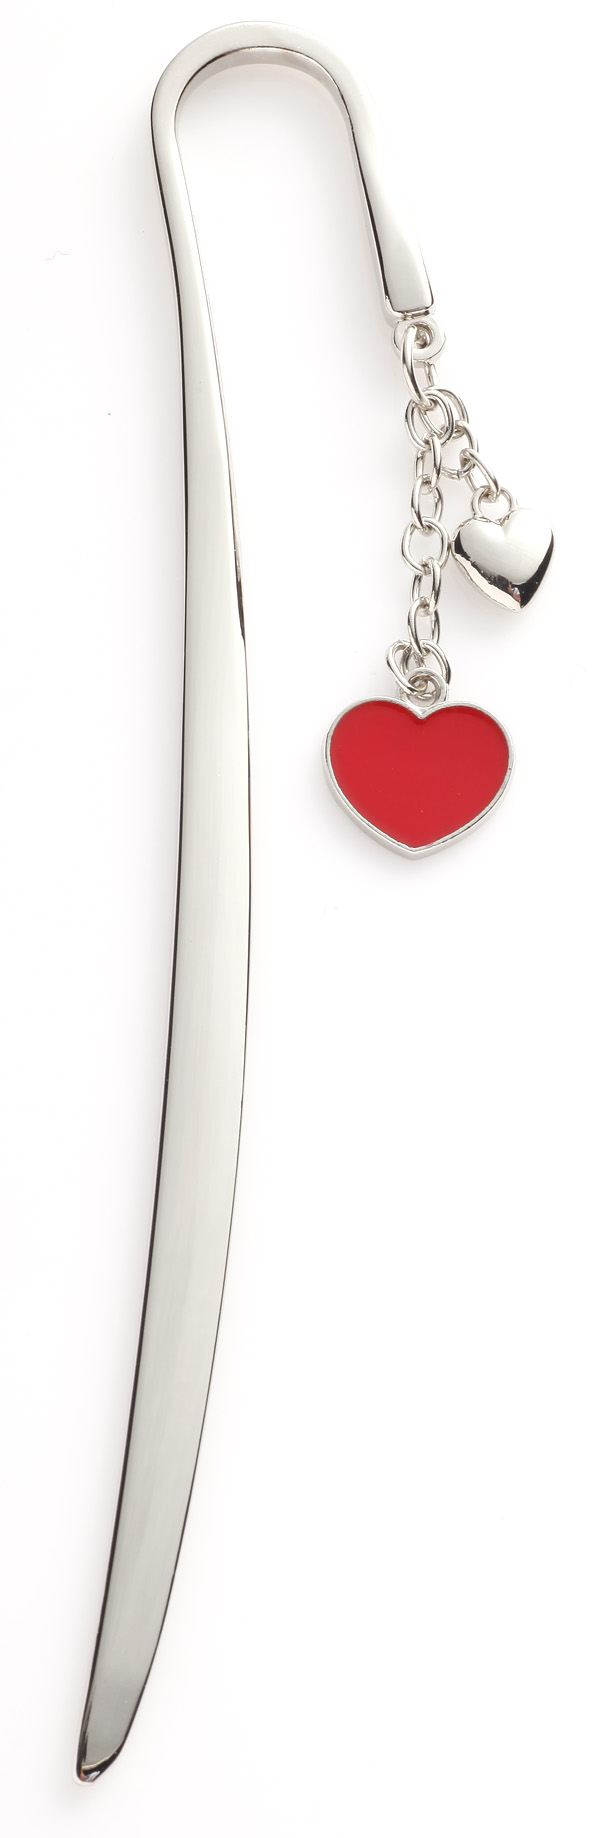 Metal-Bookmark-Gift-With-Red-Heart-Pendant-BA004- Best 20 giveaways ideas for birthdays